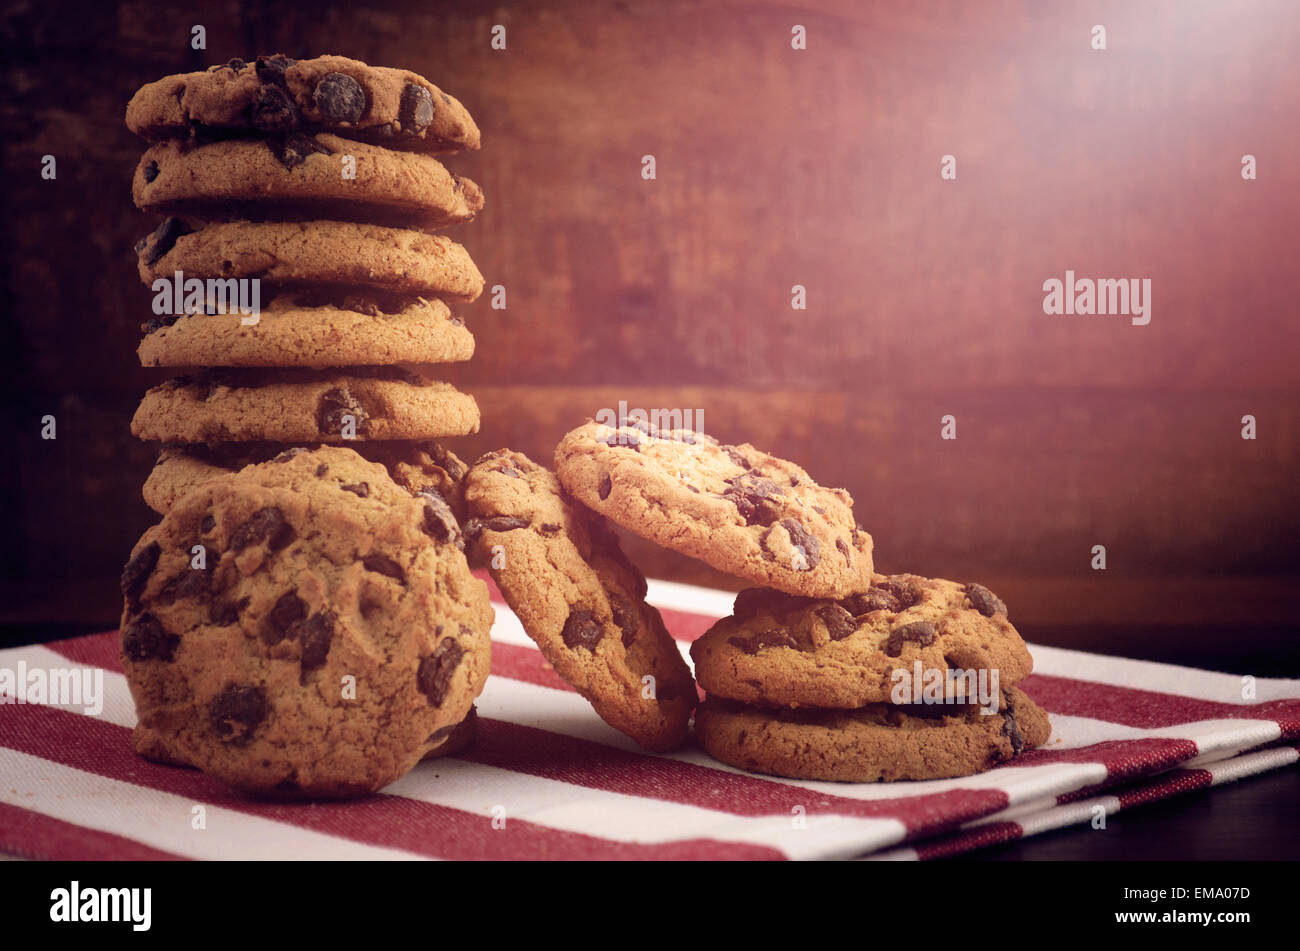 Stack of chocolate chip cookies on red and white stripe napkin against a dark wood background, with applied vintage - Stock Image